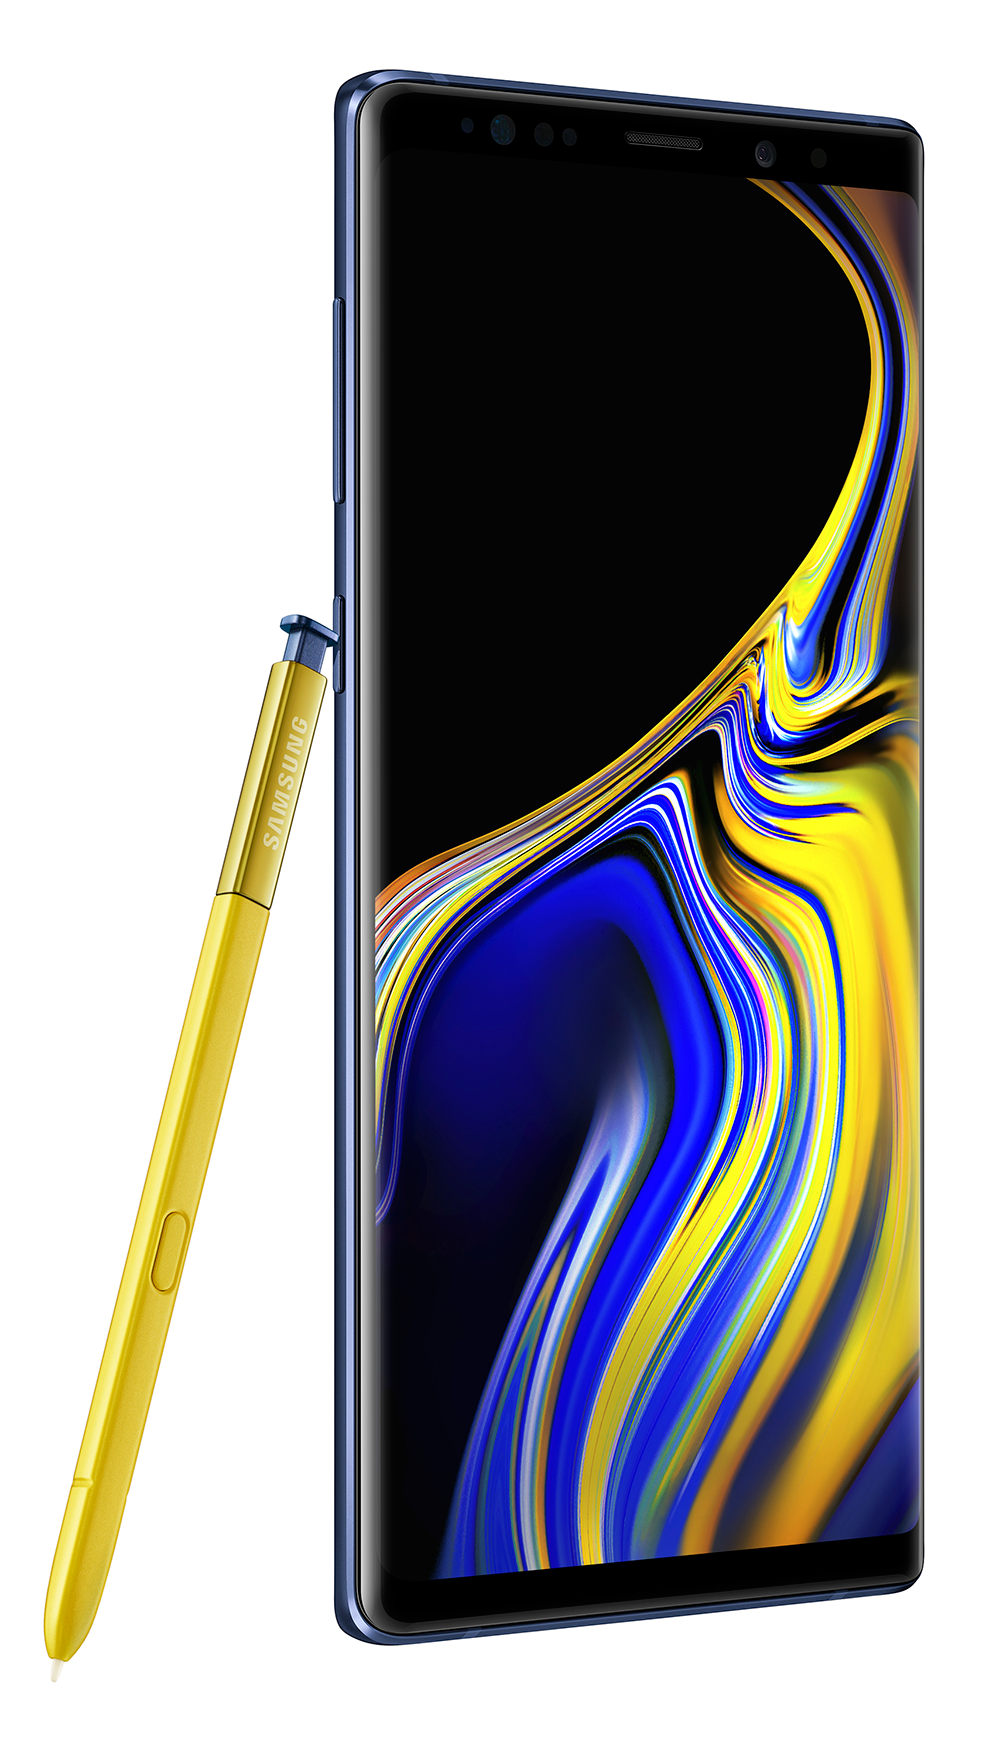 How to use the Note 9 S Pen